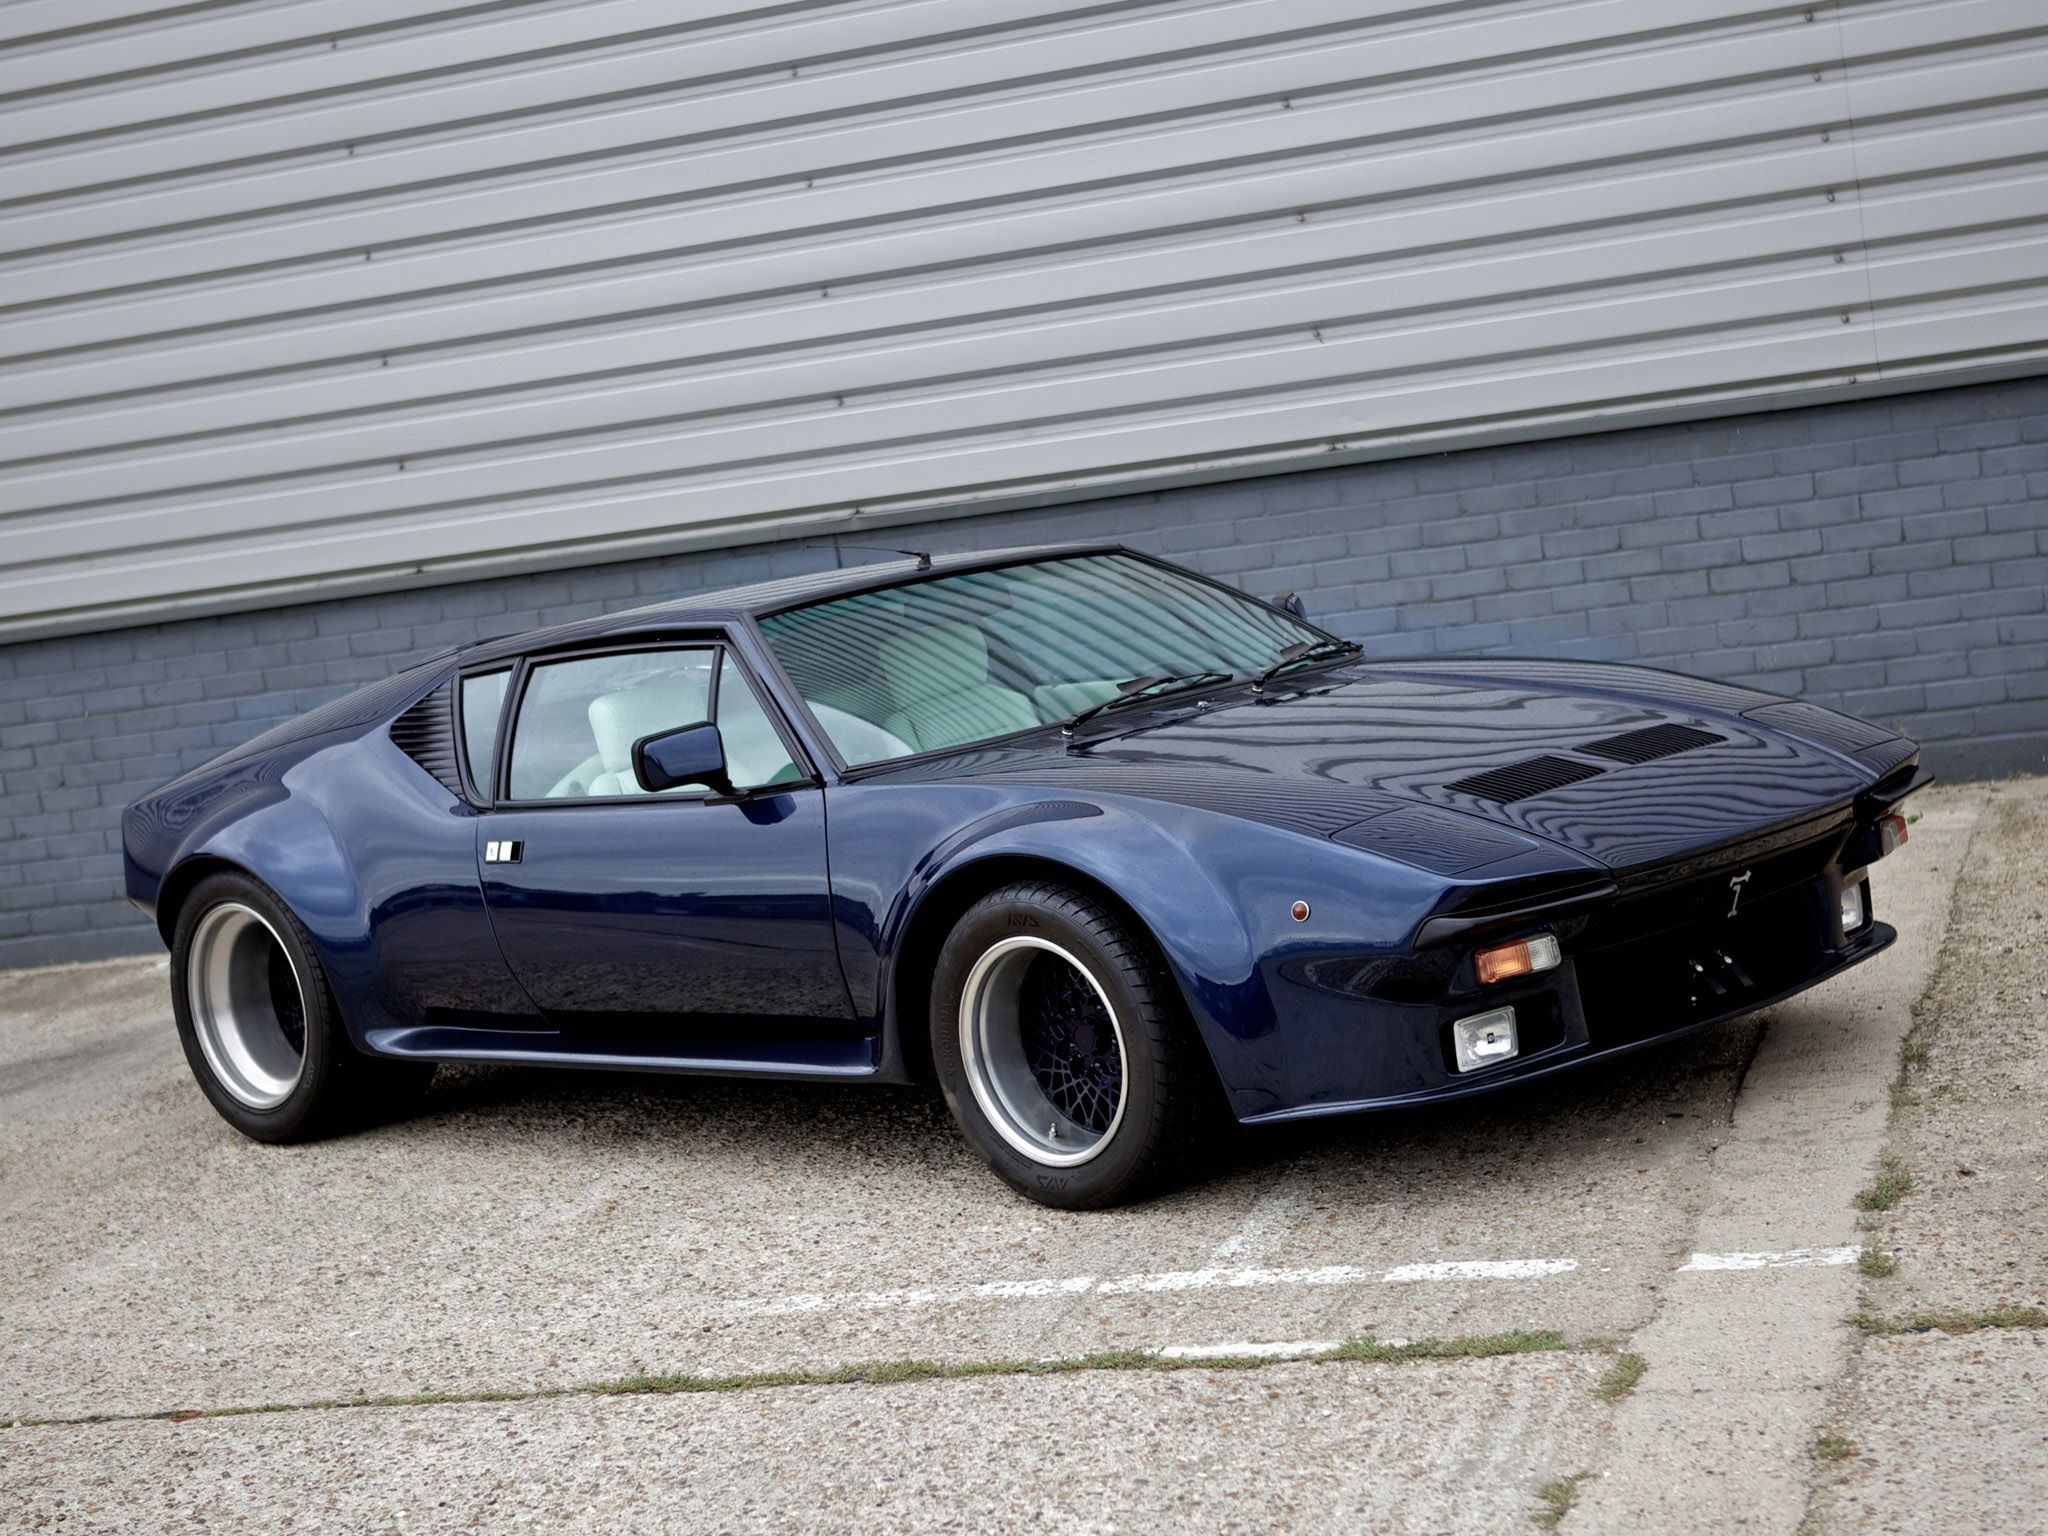 1972 De Tomaso Pantera Maintenance Of Old Vehicles The Material For New Cogs Casters Gears Pads Could Be Cast Polyami Super Cars Cool Cars Classic Sports Cars